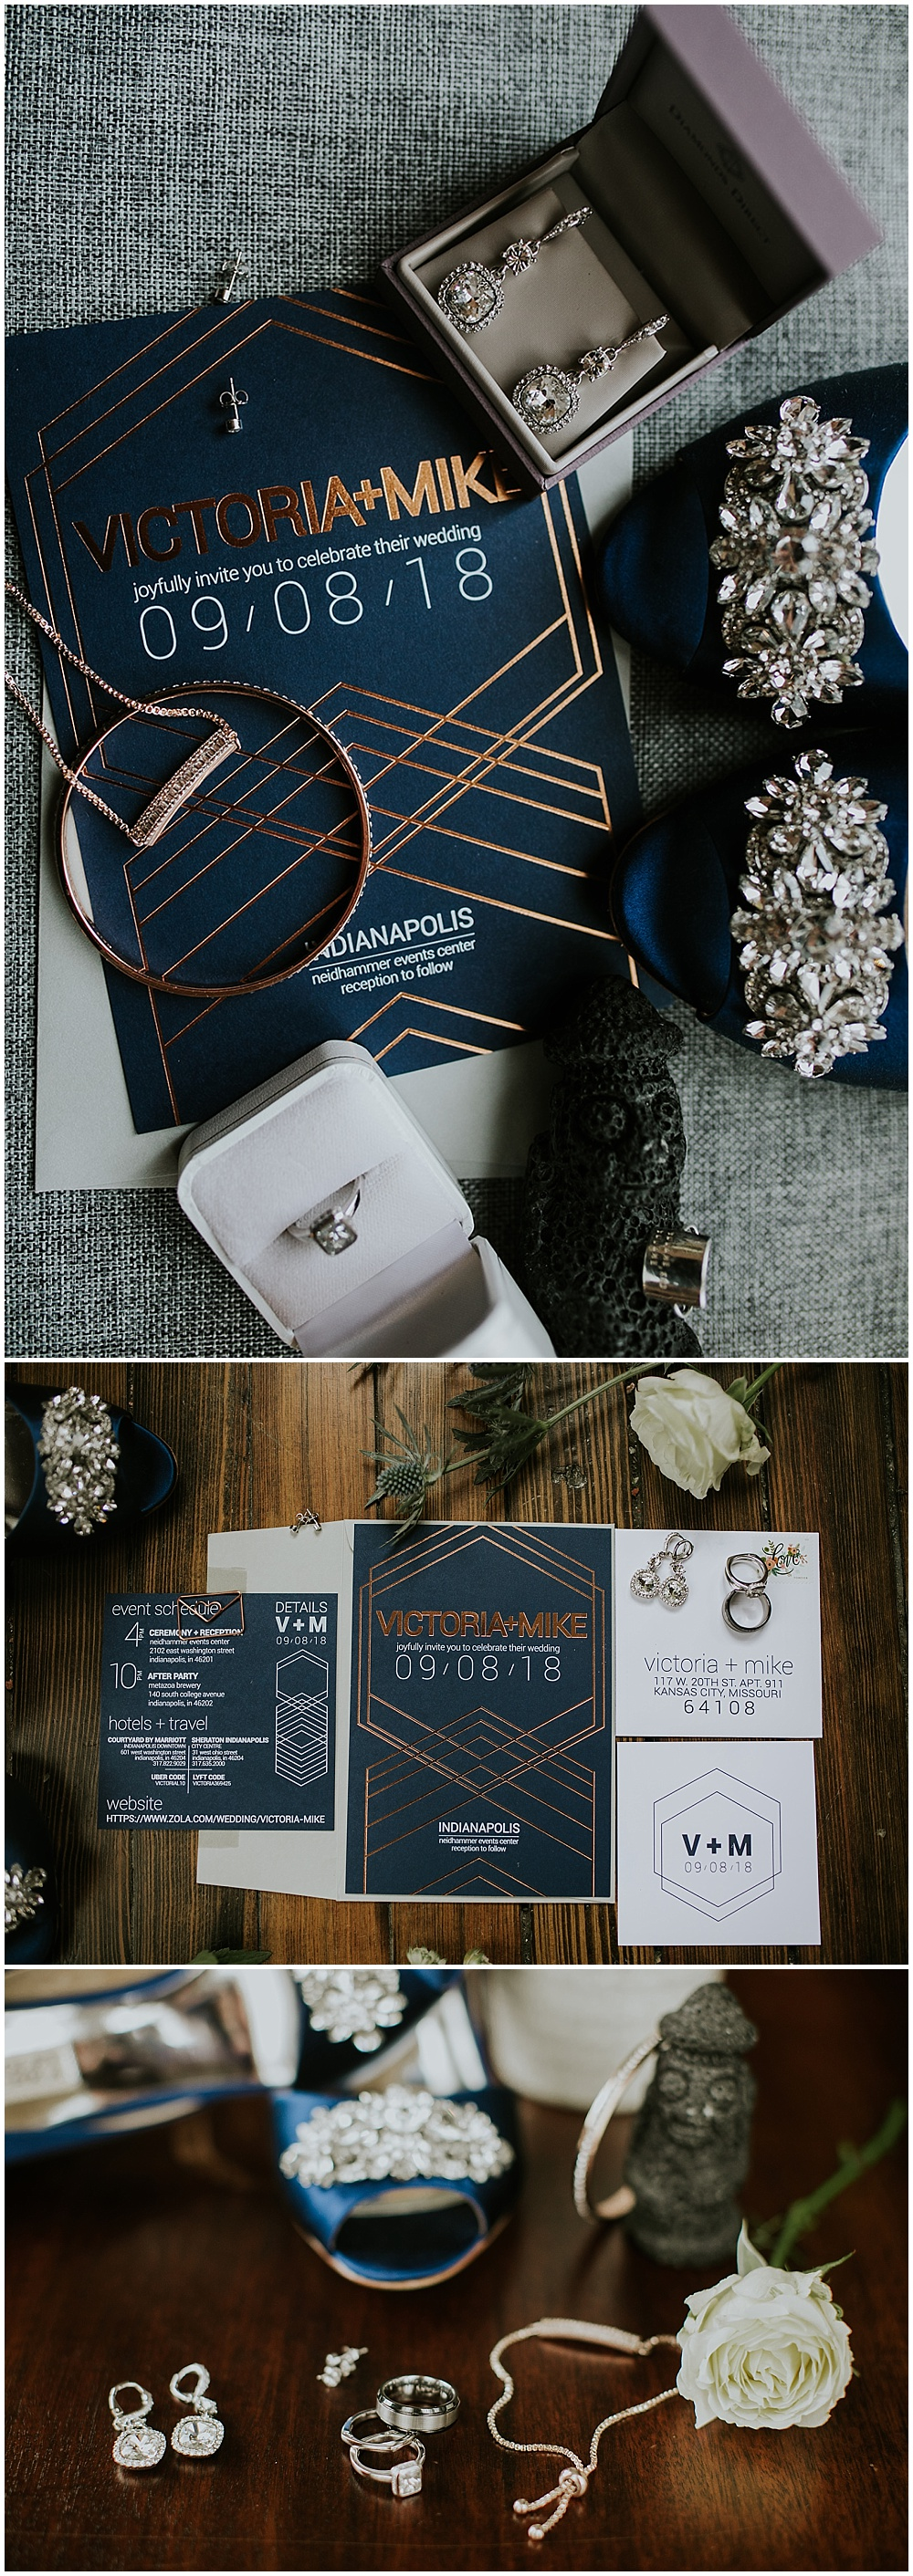 Wedding invitation suite details with wedding rings and bridal accessories | Korean-American intimate multicultural wedding in Neidhammer coffee shop